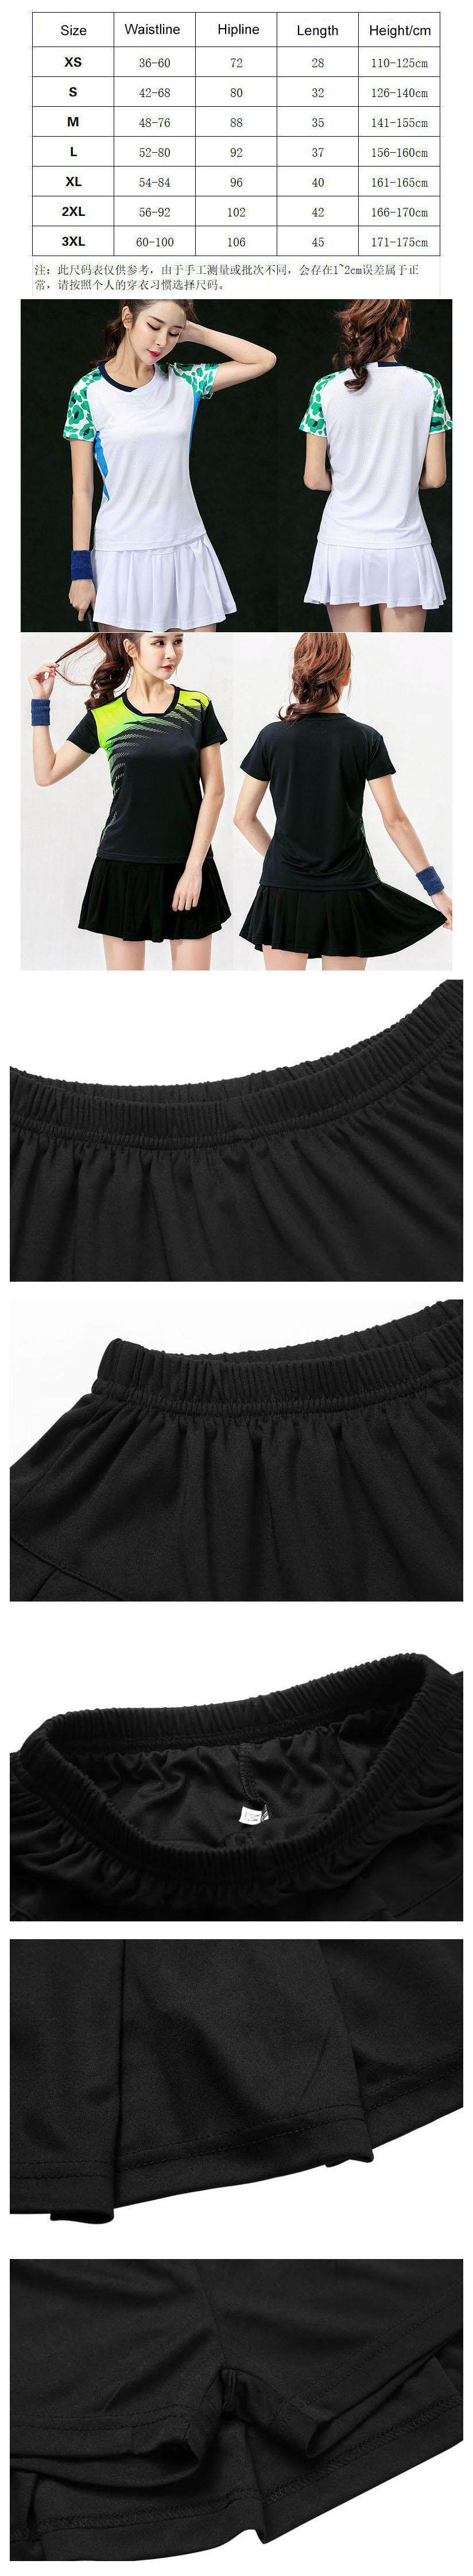 New Women Skirts Tennis Skirt all-match Sports Culottes Breathable Running  Badminton Golf Lined Short Skirt Pleated Skirts